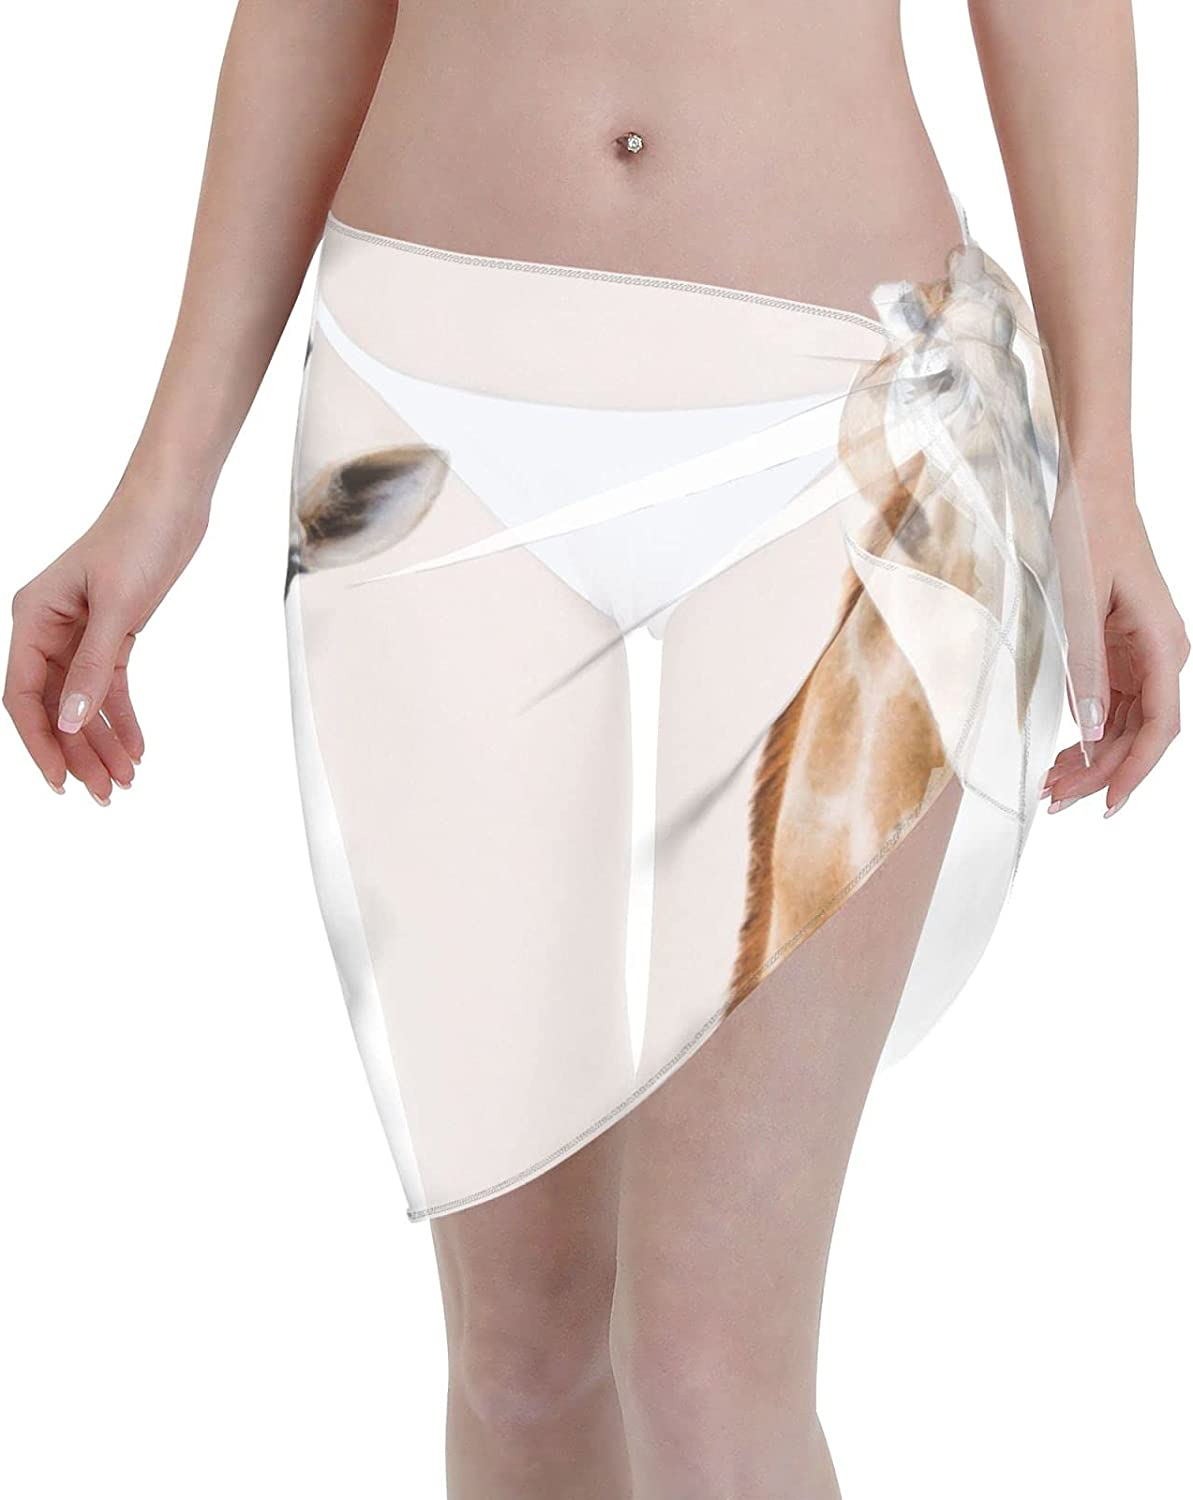 OcuteO Abstract Art Creation from Cyprus Red and White Swirl Womens Swimsuit Coverup